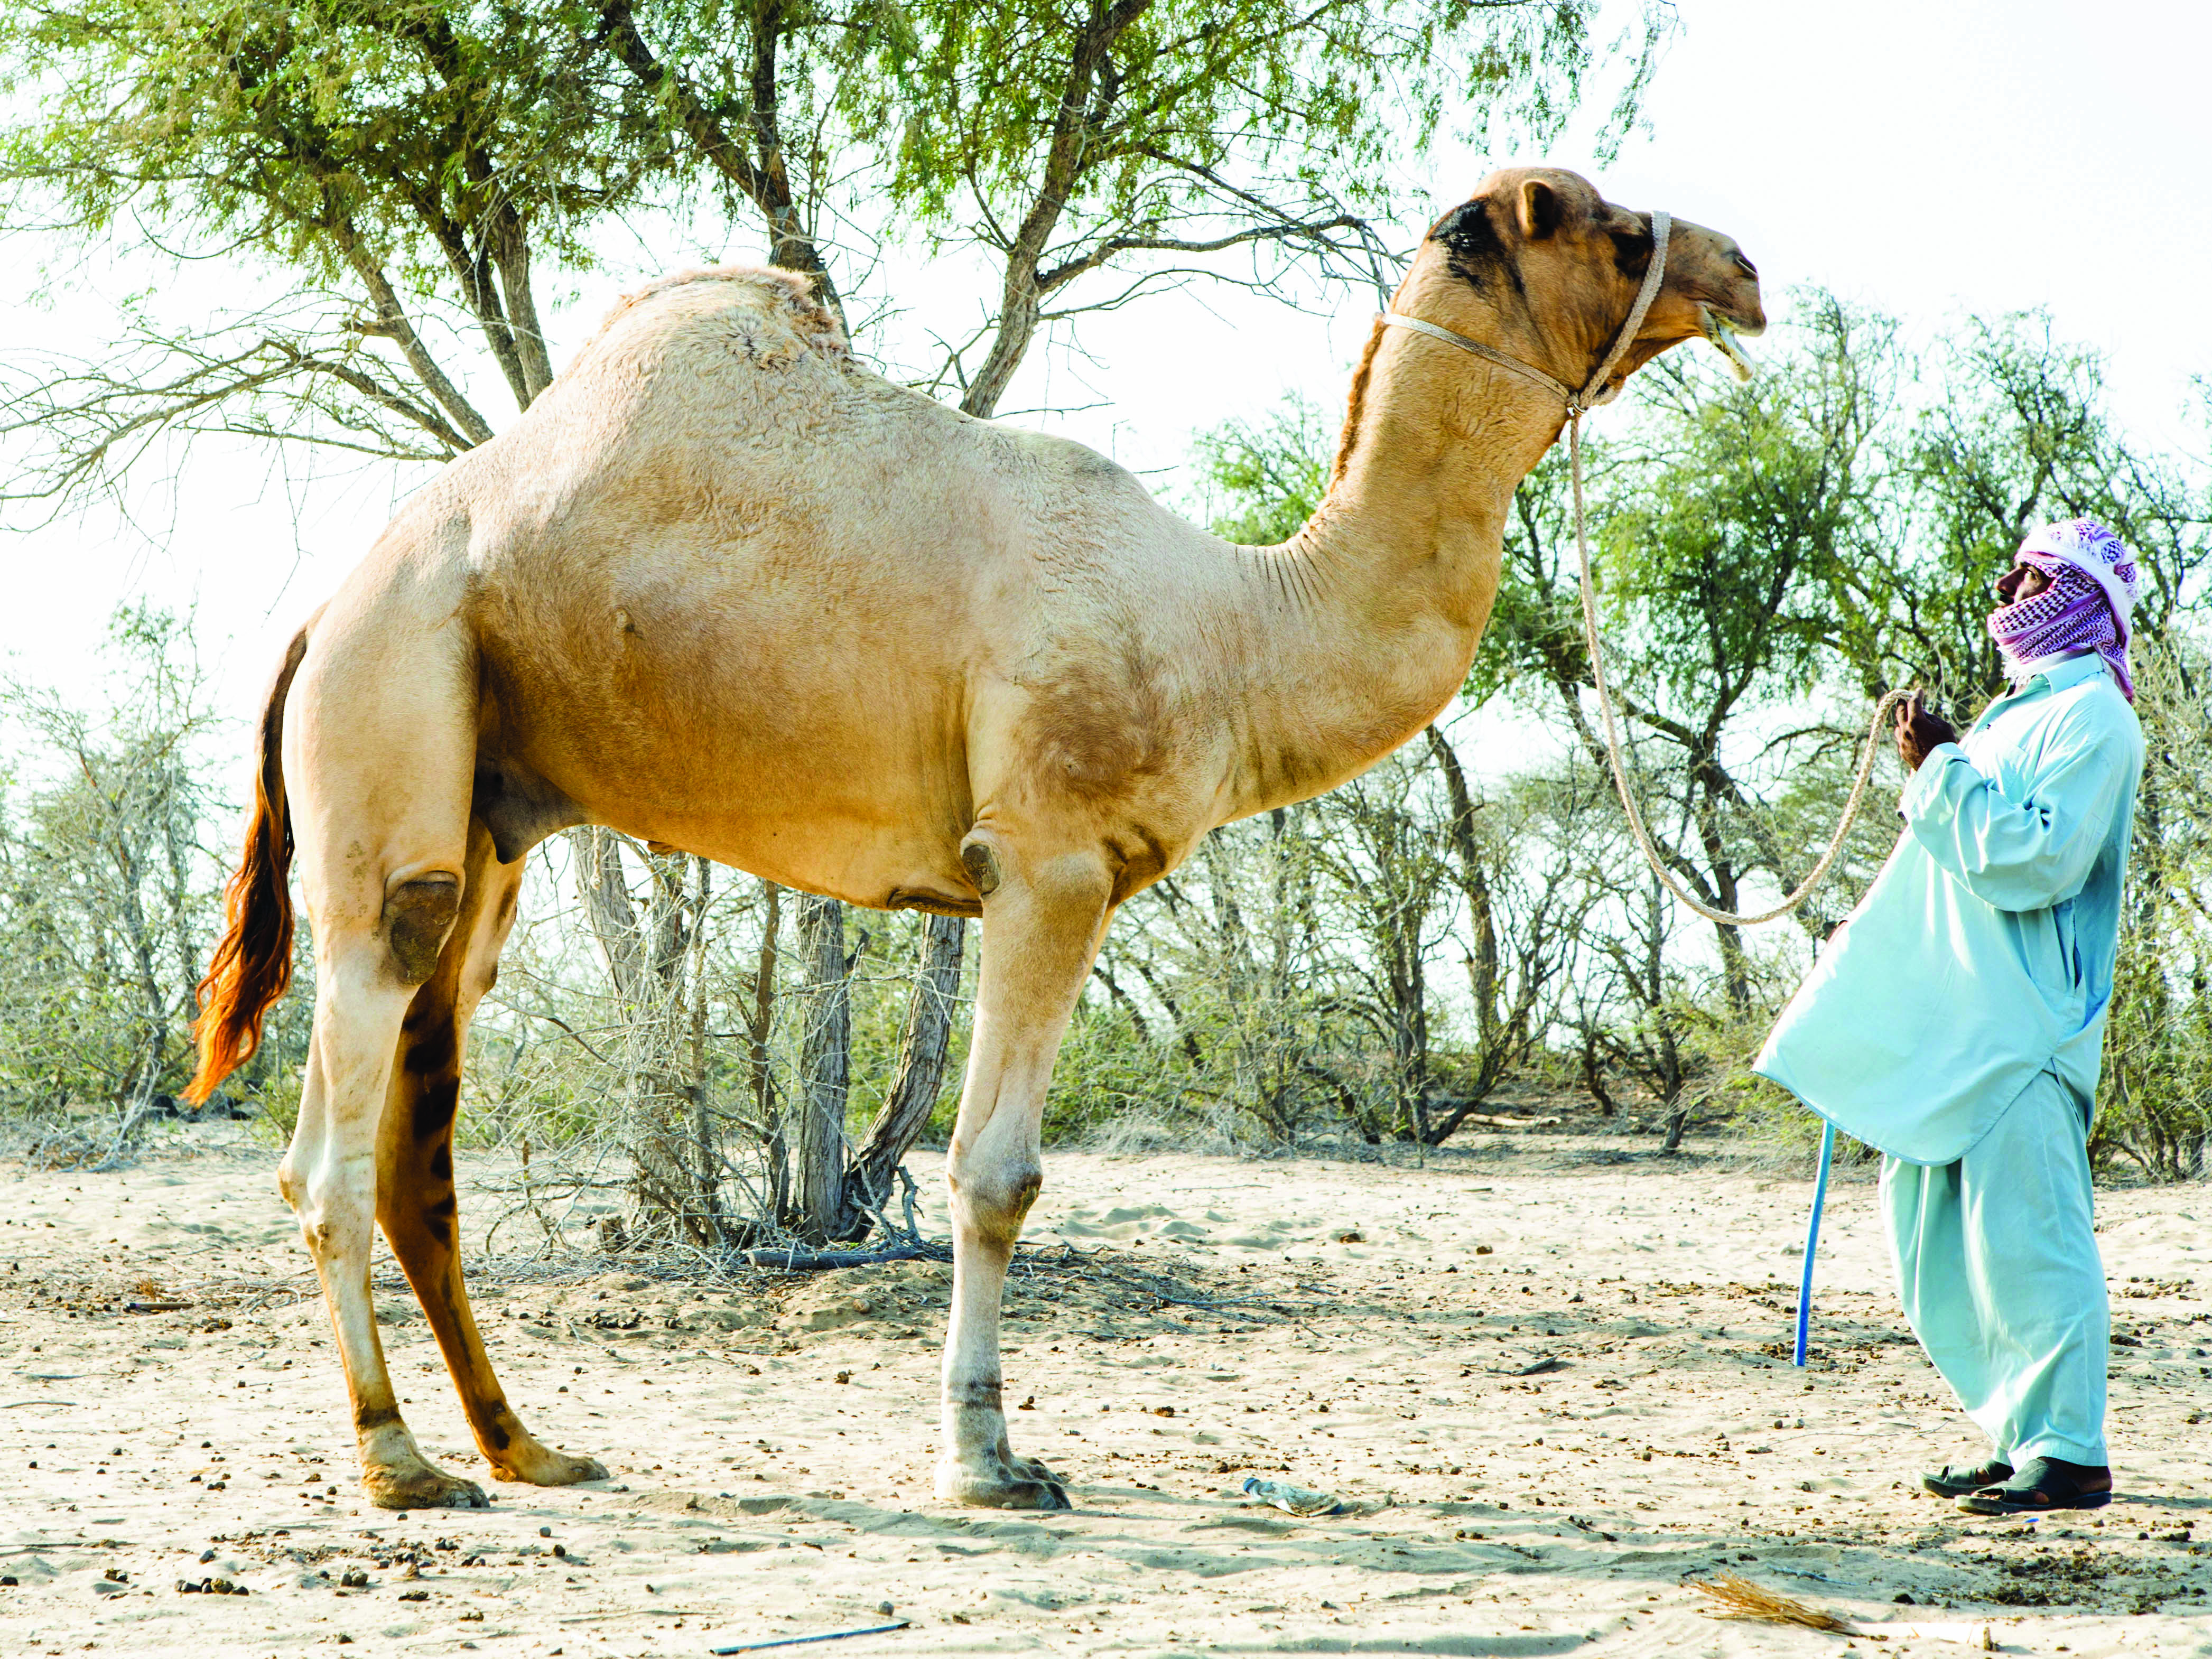 Special Feature: Behind the Scenes at a Traditional Camel Beauty Contest in Oman